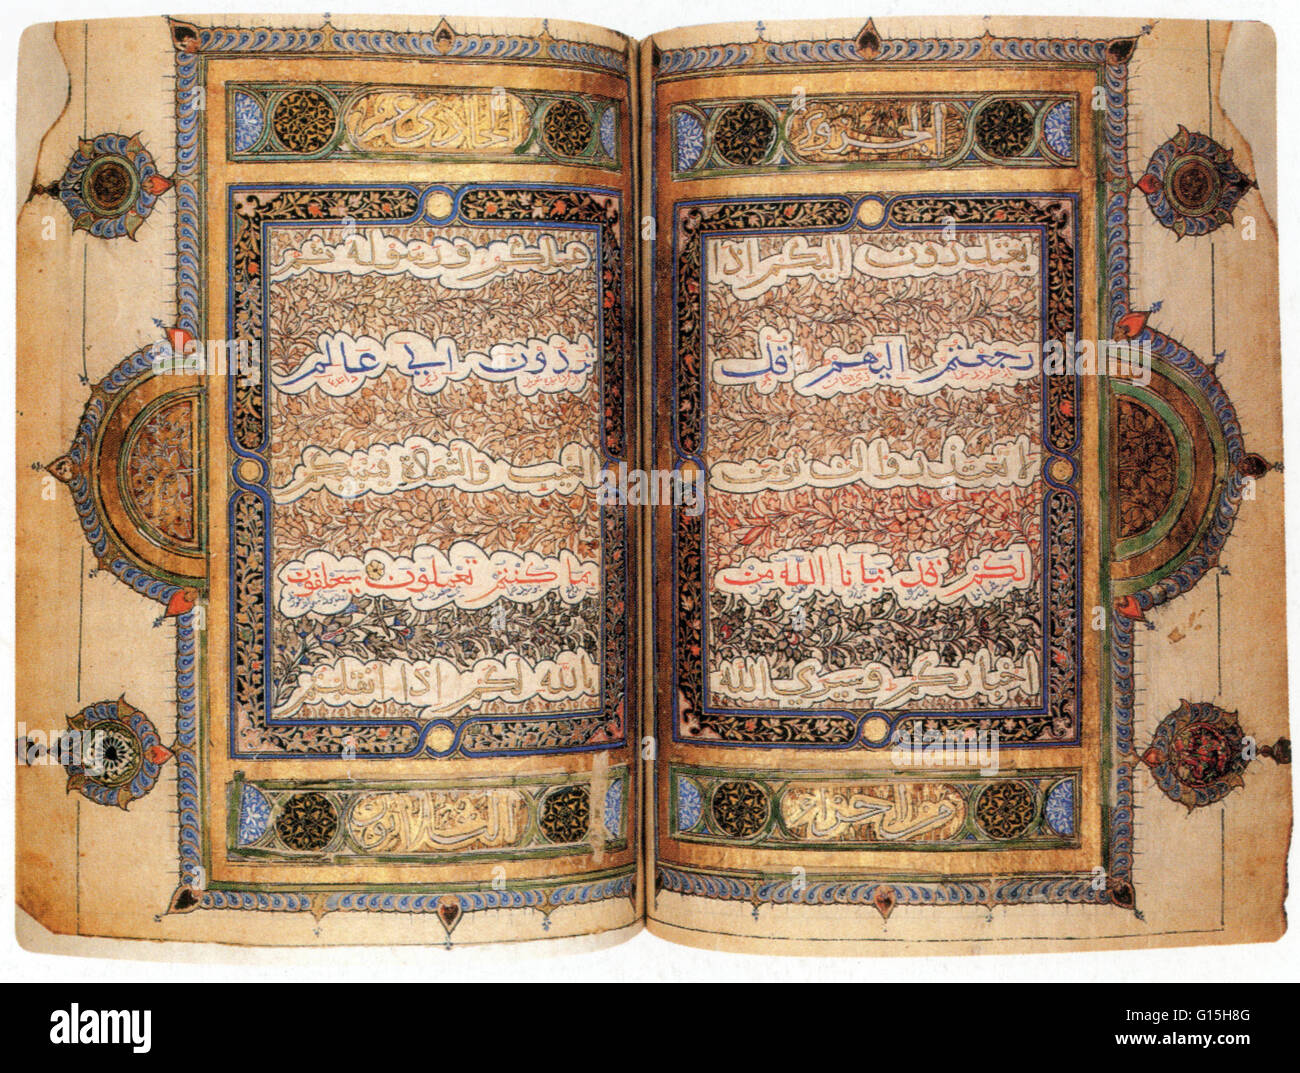 The illuminated double page written in Bihari script from the Koran.  Bihari is recognizable by its emphasis on - Stock Image